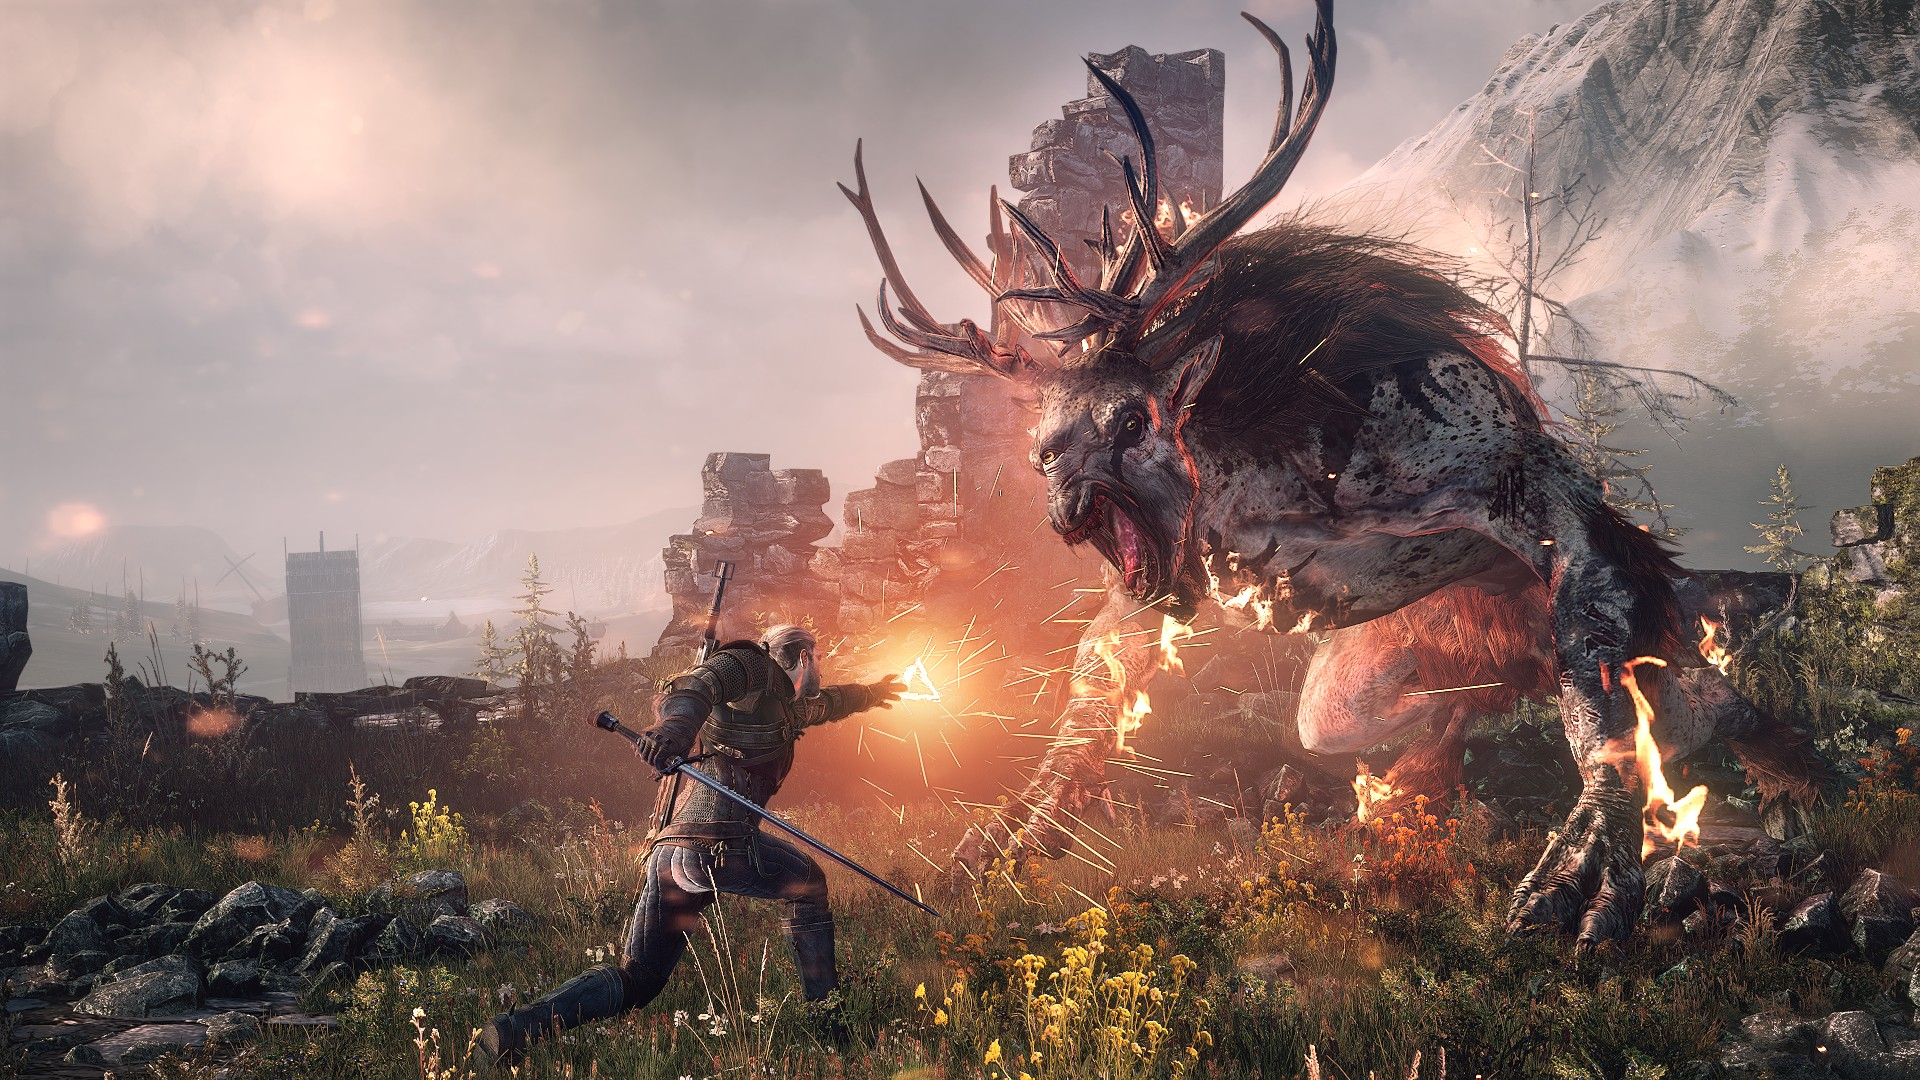 The Witcher 3: Wild Hunt - Os monstros e como enfrentá-los - Dicas